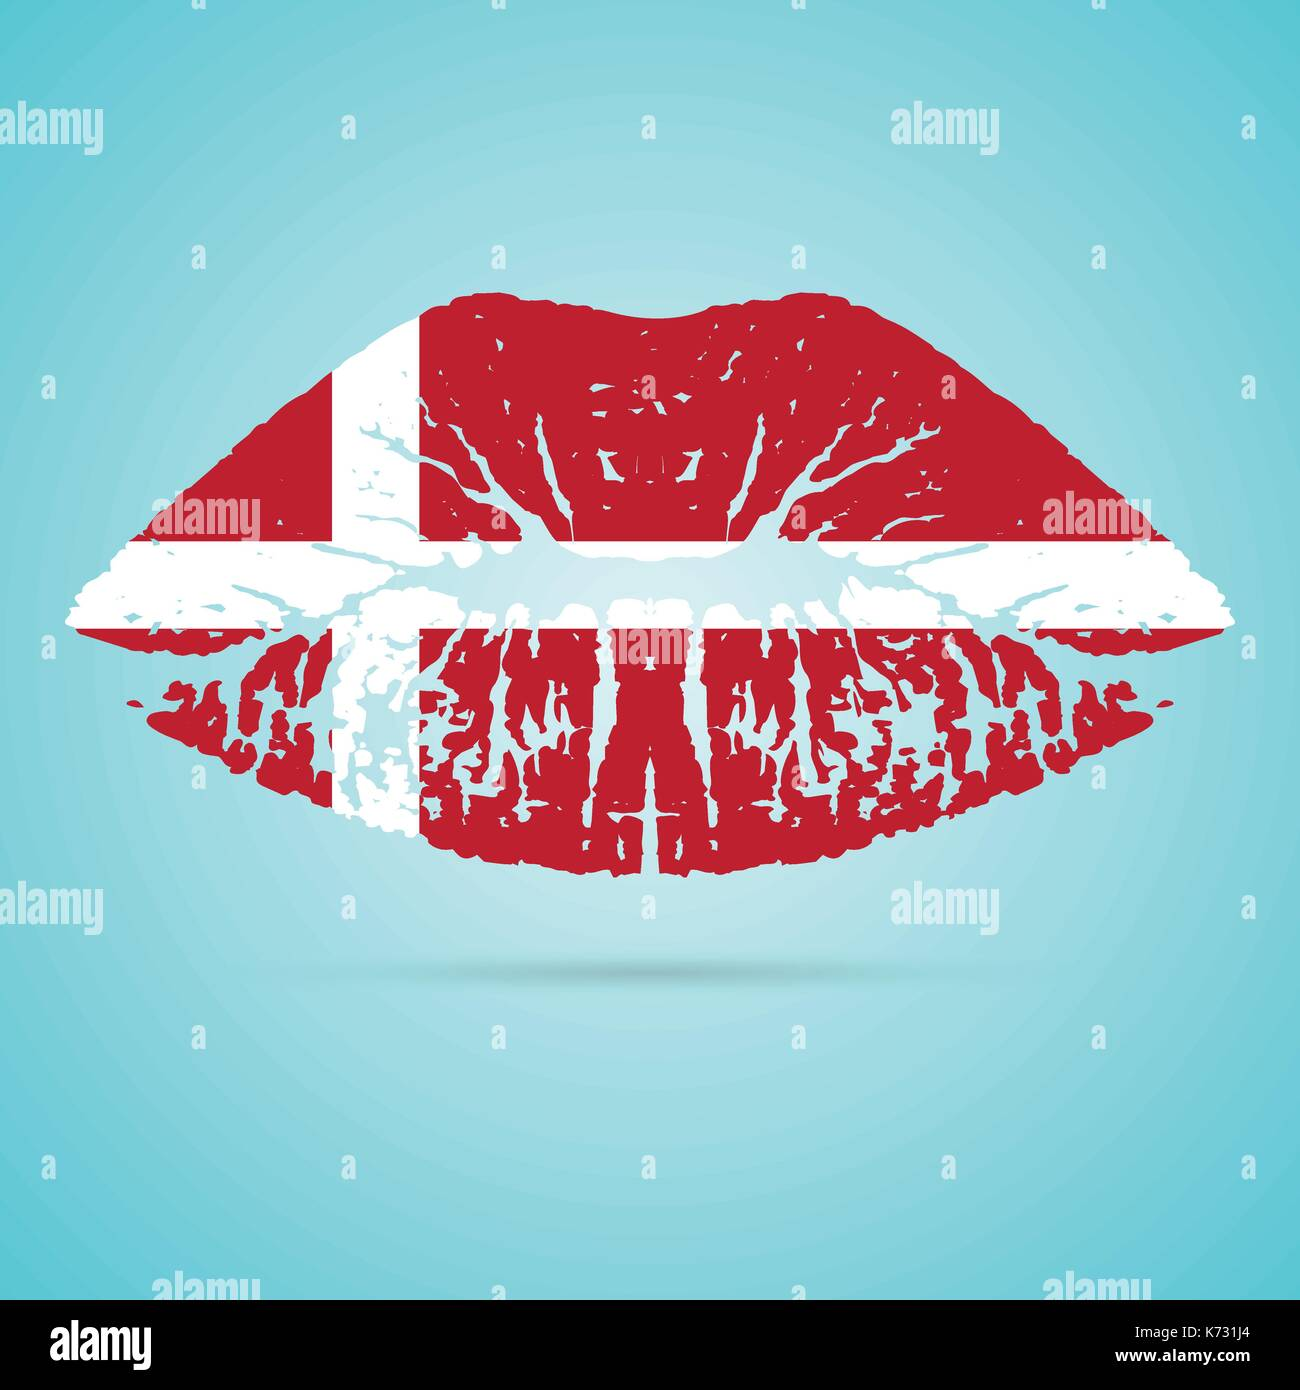 Denmark Flag Lipstick On The Lips Isolated On A White Background. Vector Illustration. - Stock Image